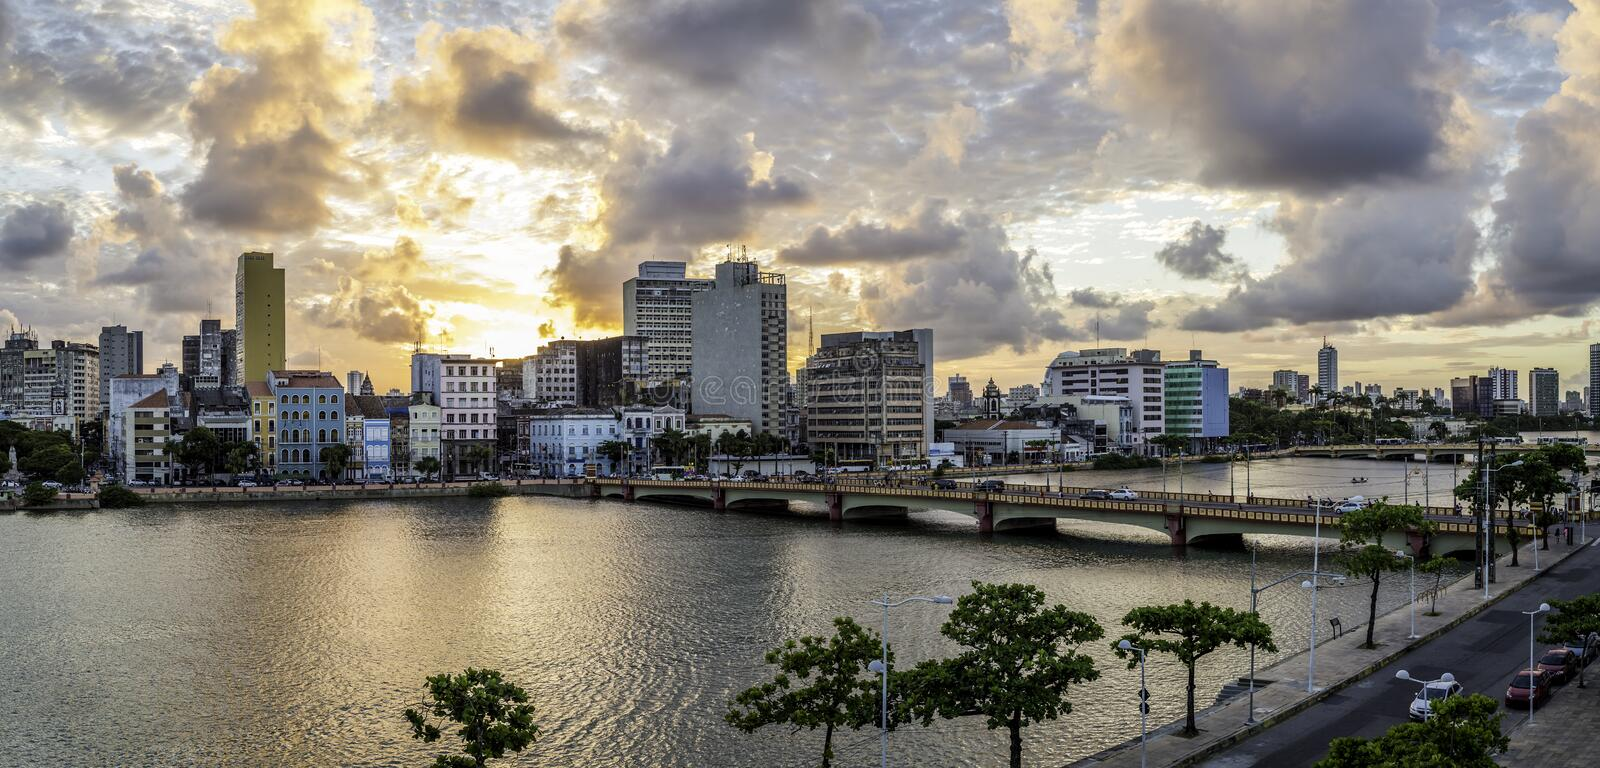 Recife. Aerial view of the historic architecture of Recife in Pernambuco, Brazil at sunset stock images